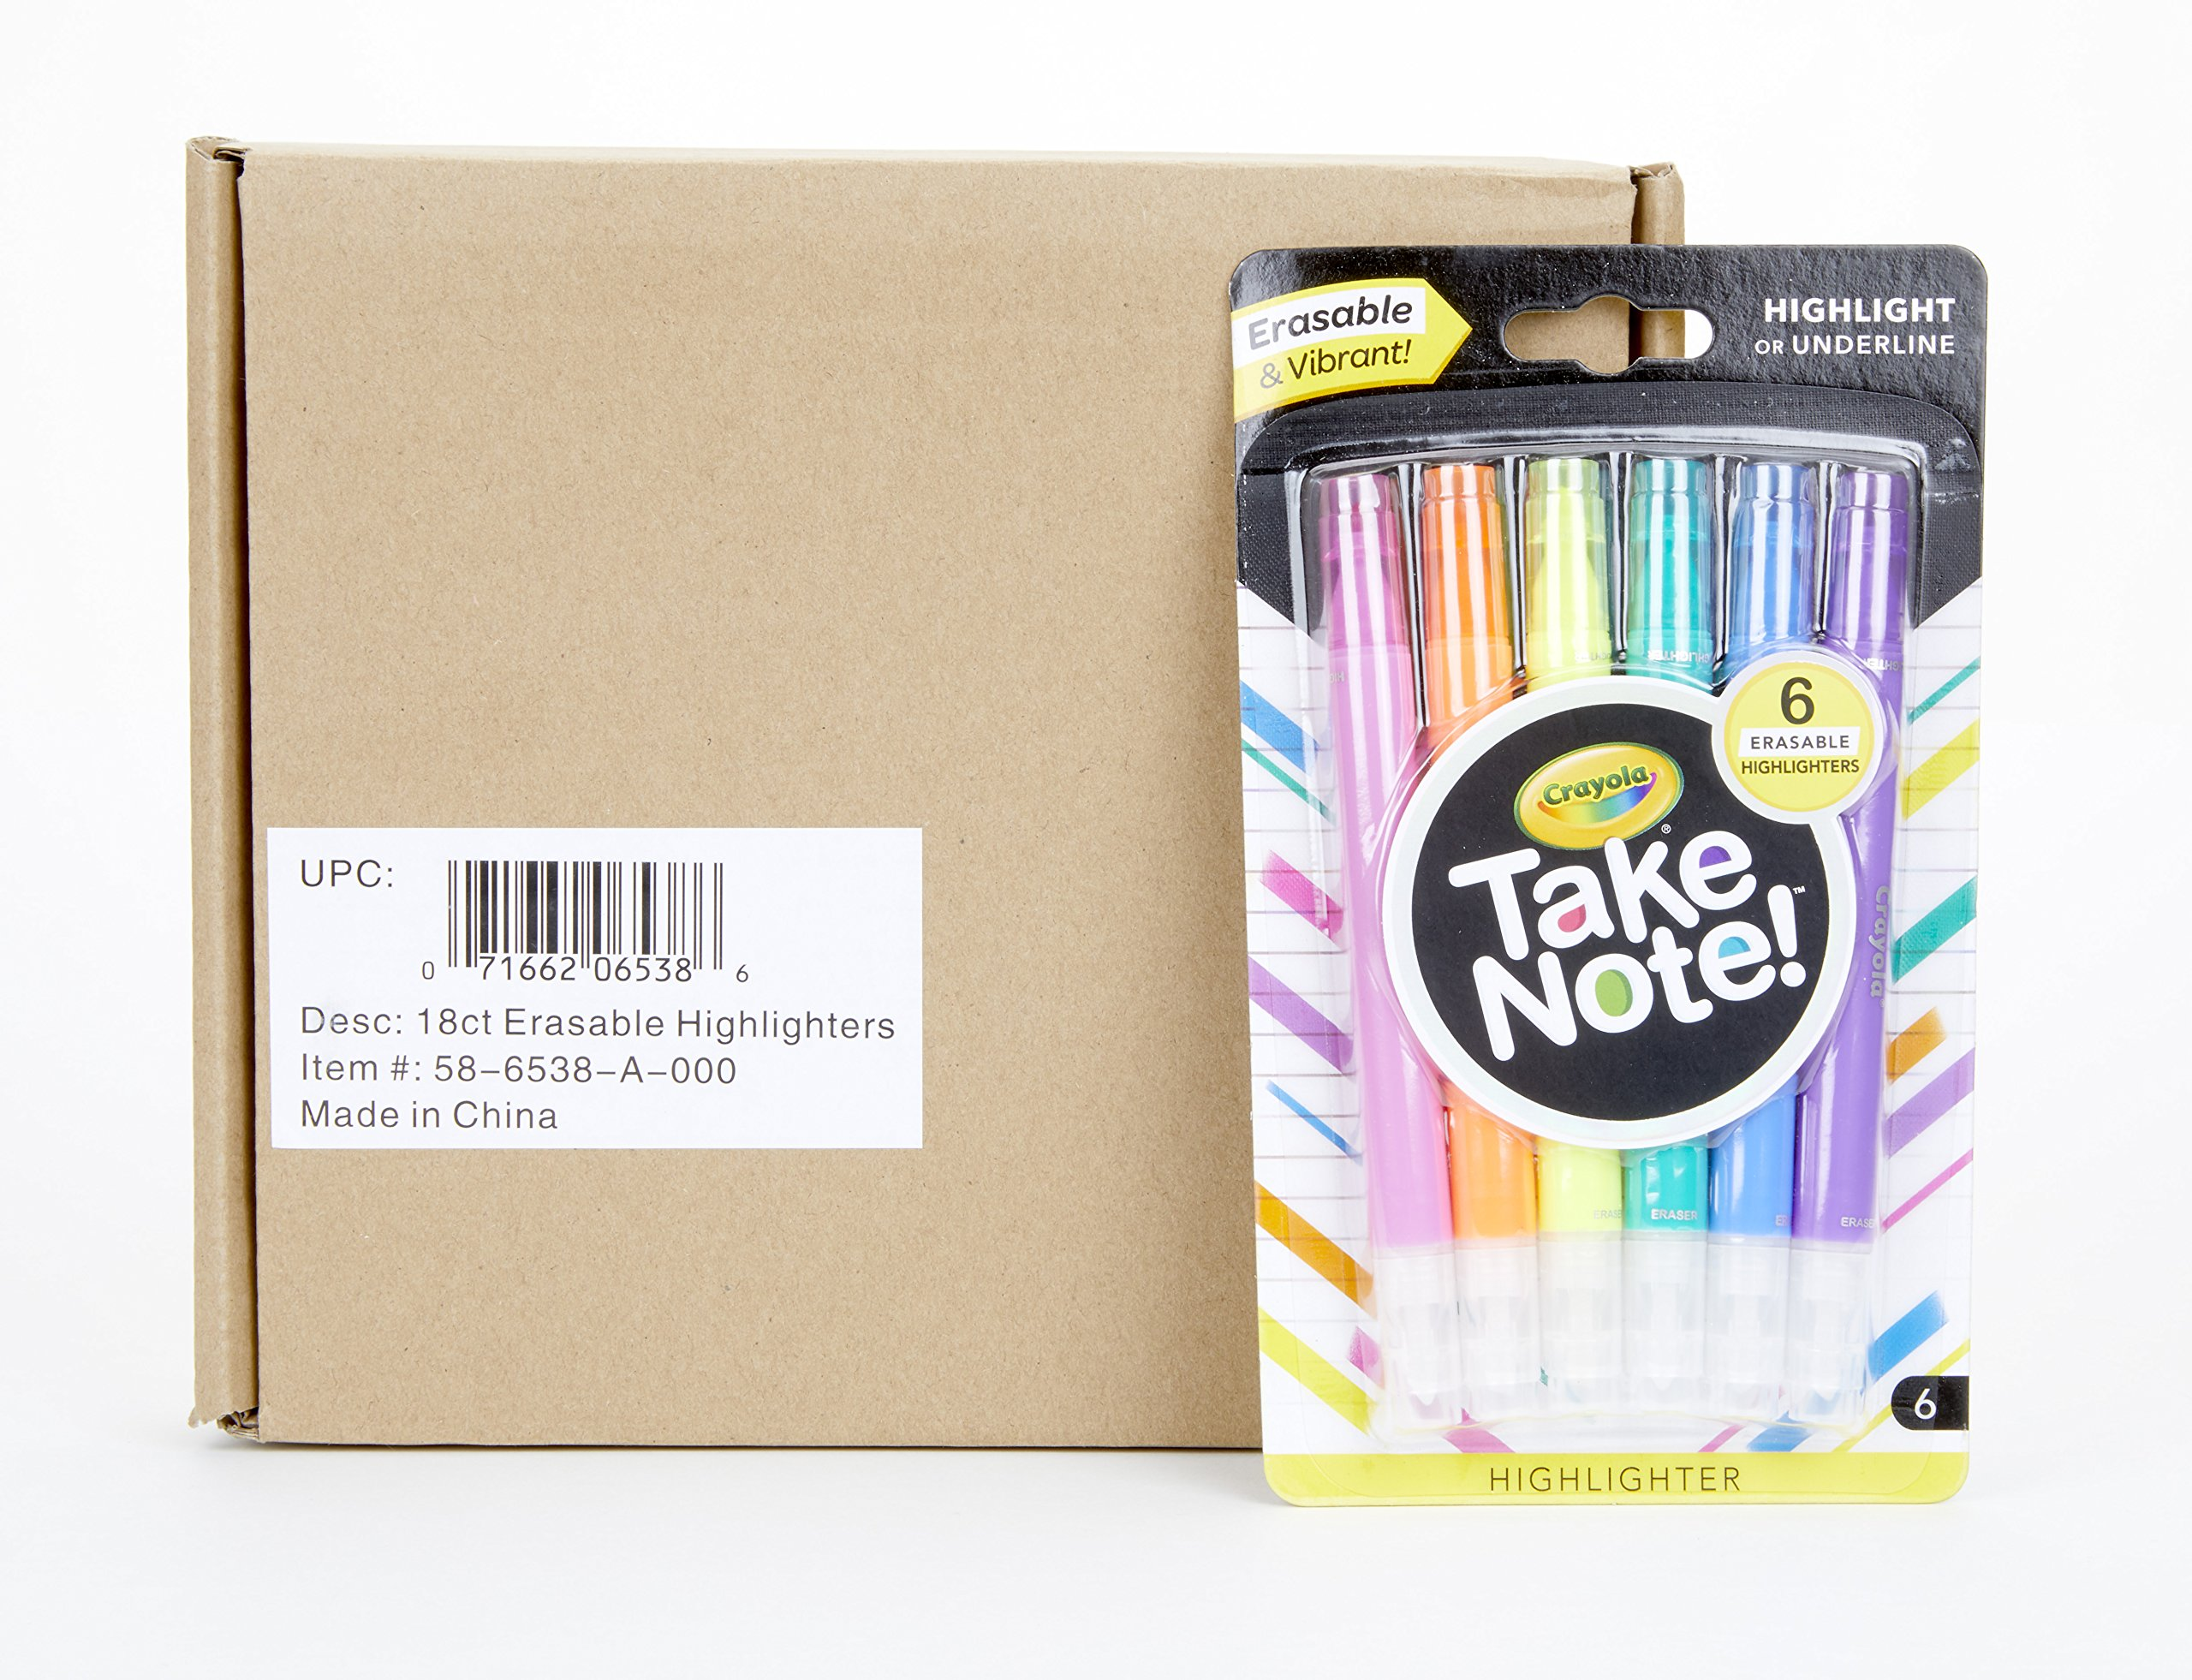 Crayola Take Note! Erasable Highlighters, Bullet Journal & School Supplies, 18Count, Gift by Crayola (Image #3)